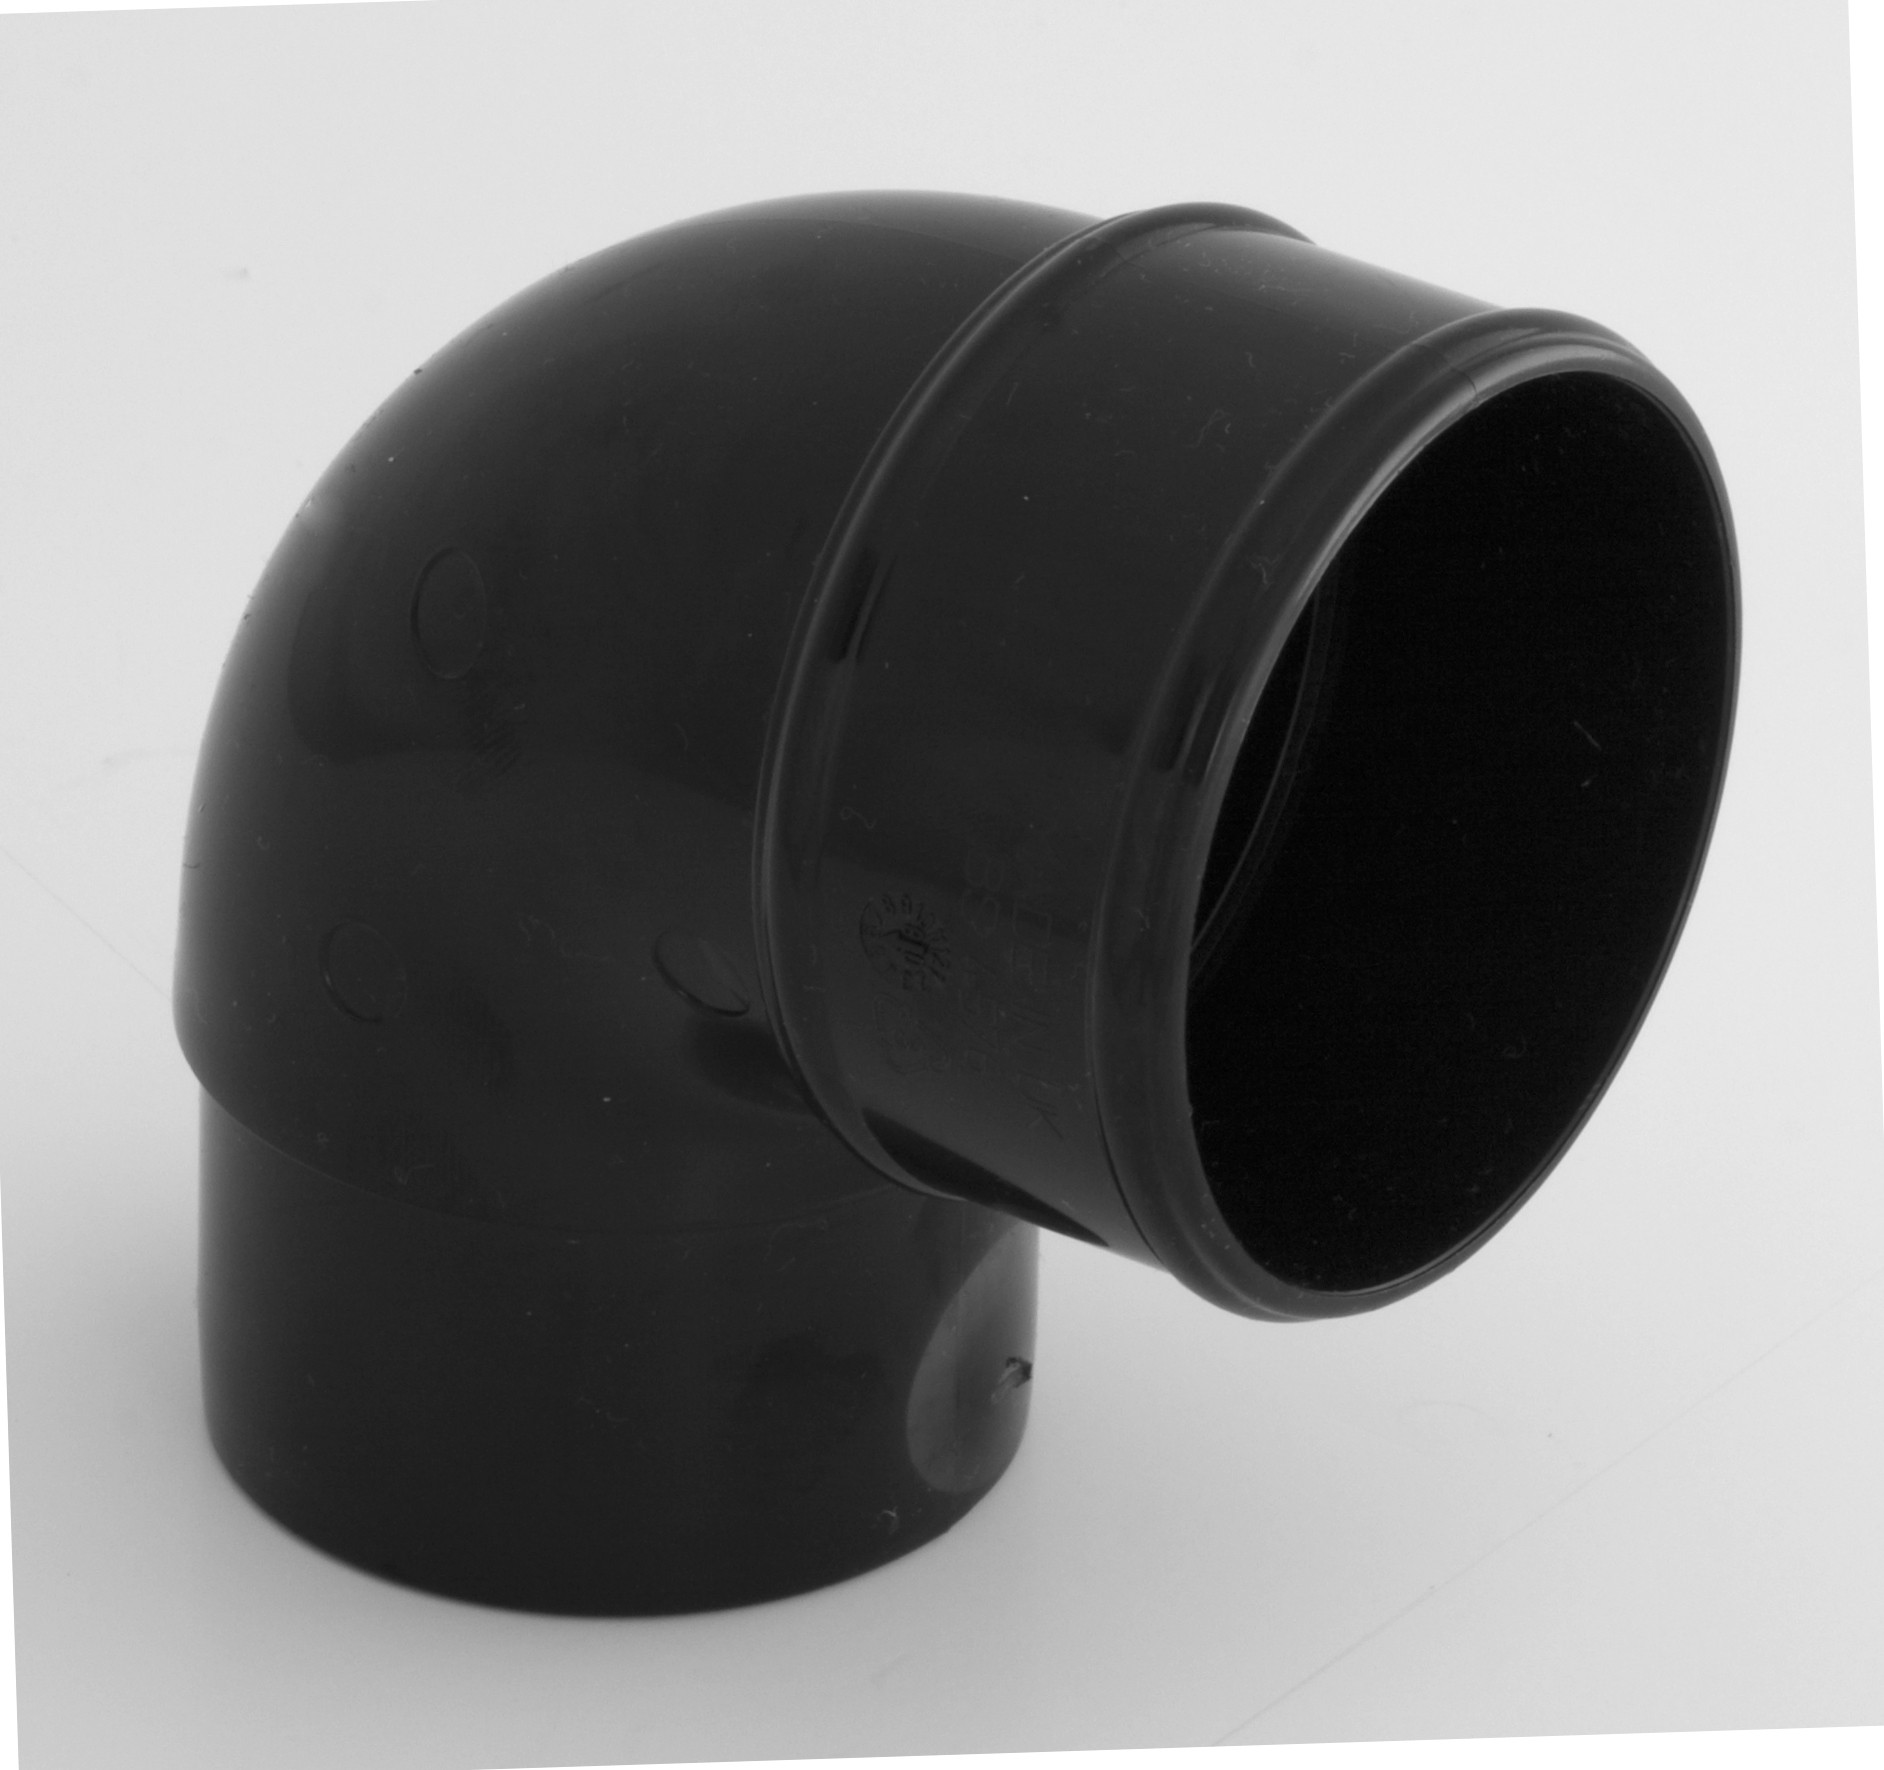 68mm Round Downpipe 92 5 176 Bend Black Round Downpipes